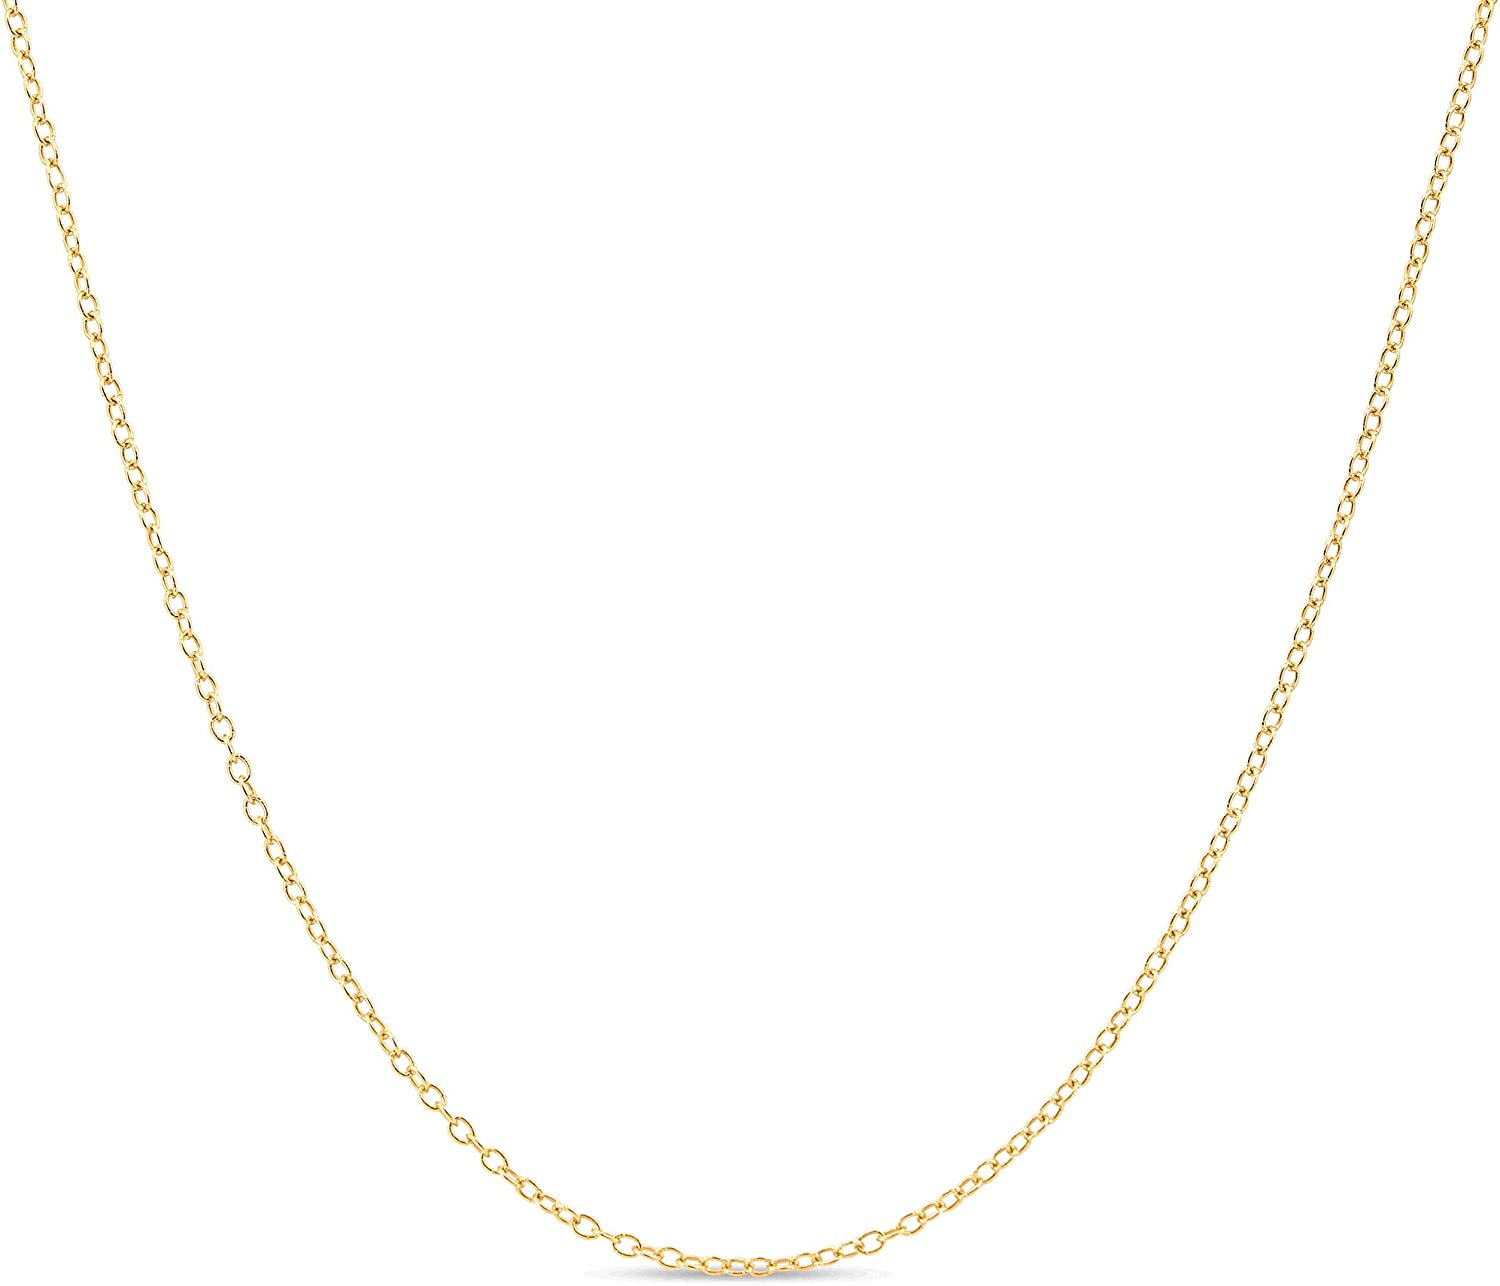 KEZEF Creations Sterling Silver with Gold Overlay 1.3mm - Cable